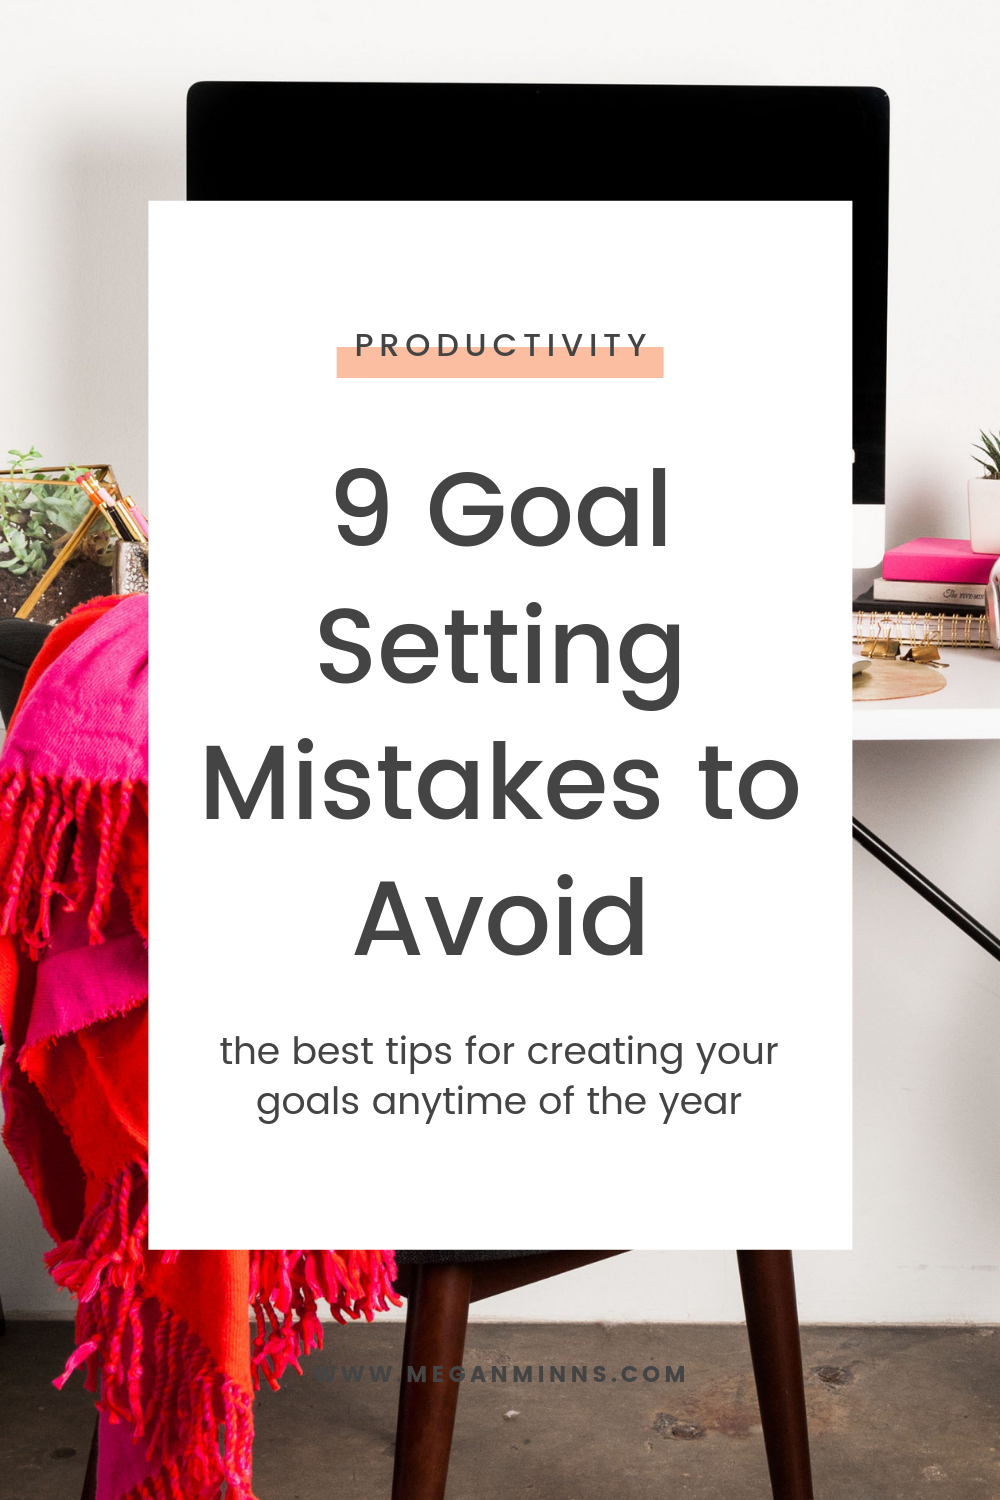 There's nothing magical about January 1st, and there's also no reason why we shouldn't be making goals throughout the year! I'm sharing 9 critical mistakes to avoid when you're setting goals so you can set yourself up for the best success possible.  Listen for all my tips and tricks, and be sure to check out my NEW goal setting course!  READ THE FULL BLOG POST ➡️ https://meganminns.com/blog/goal-setting-mistakes-to-avoid